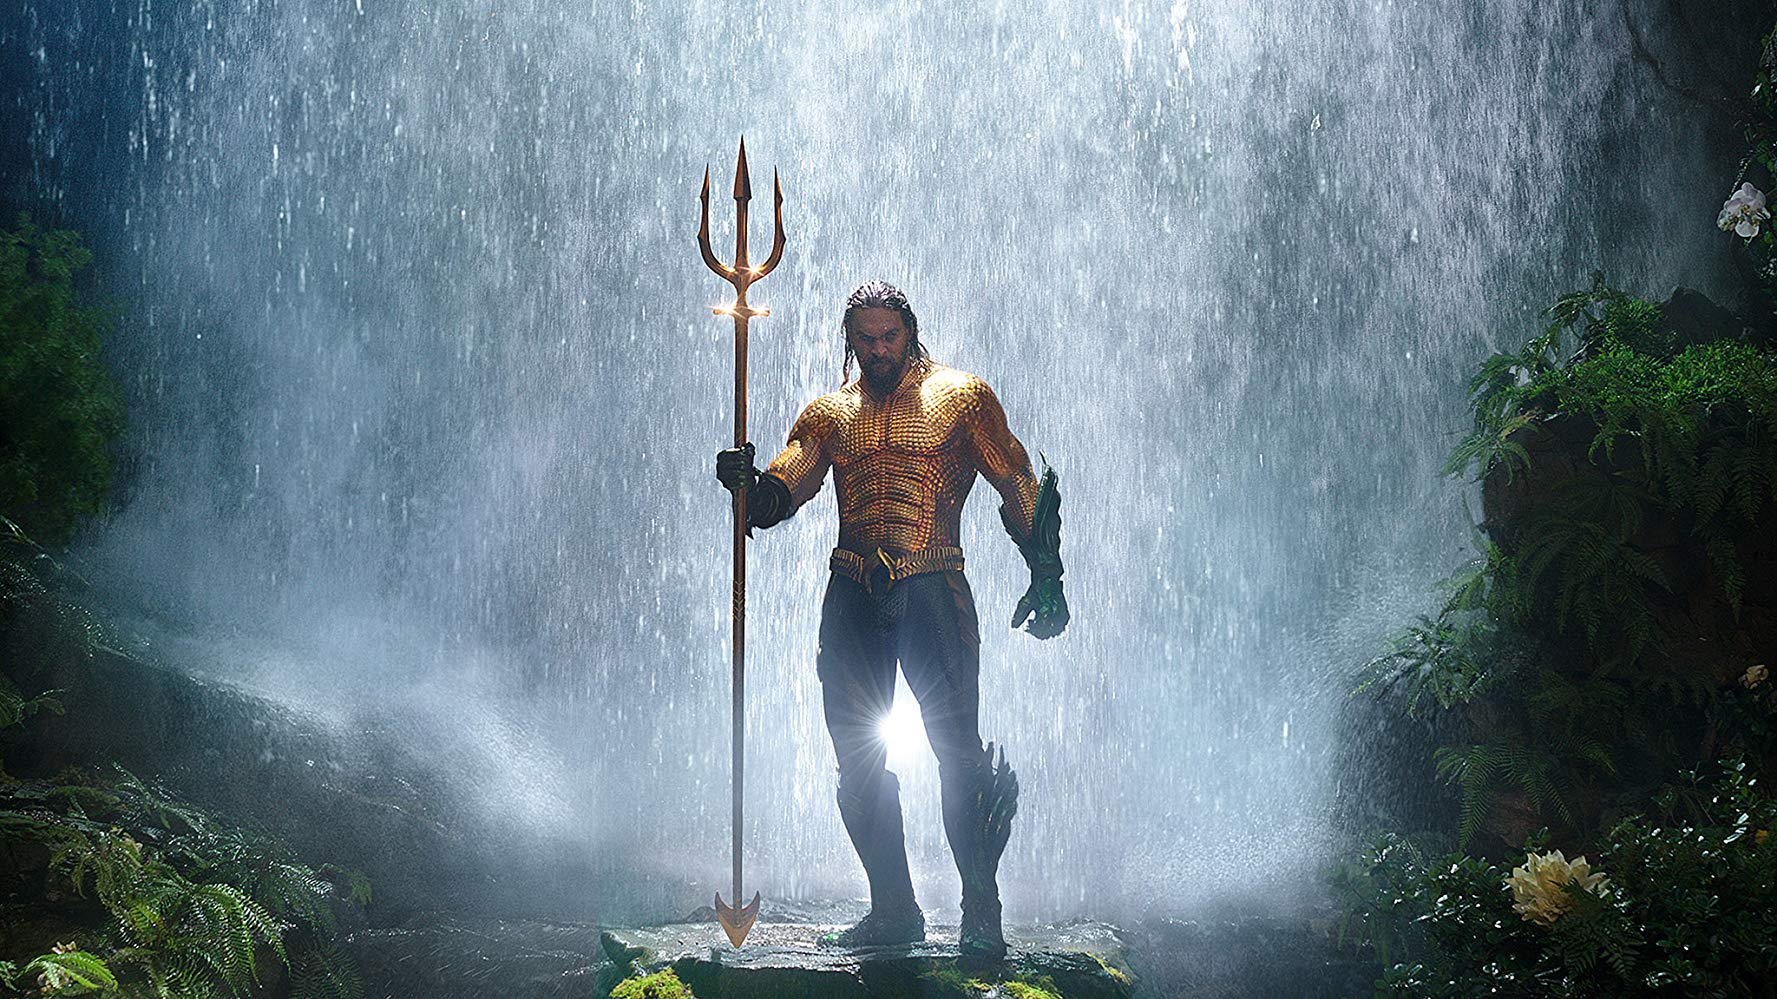 Aquaman-Jason Mamoa-DC-Warner Bros